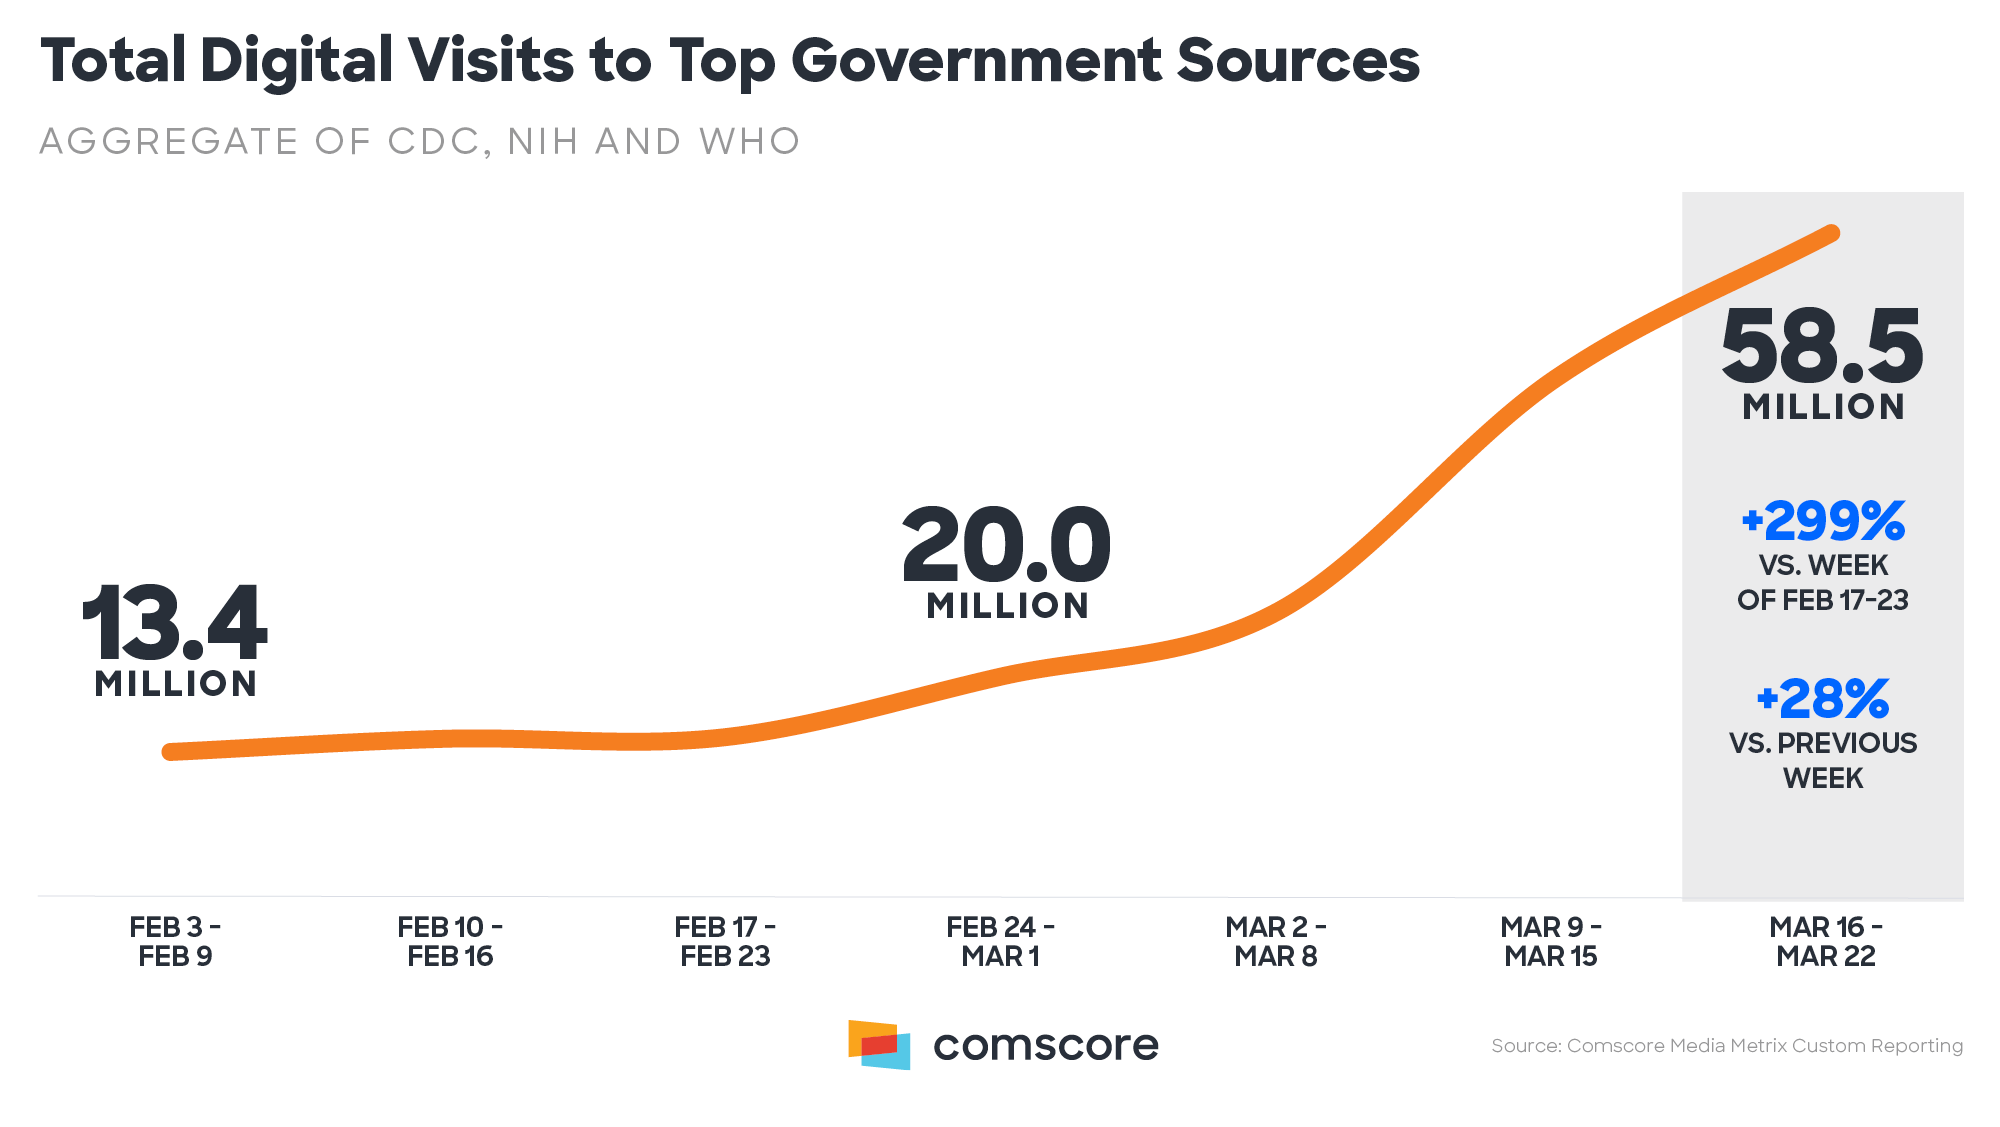 Total Digital Visits to Top Government Sources